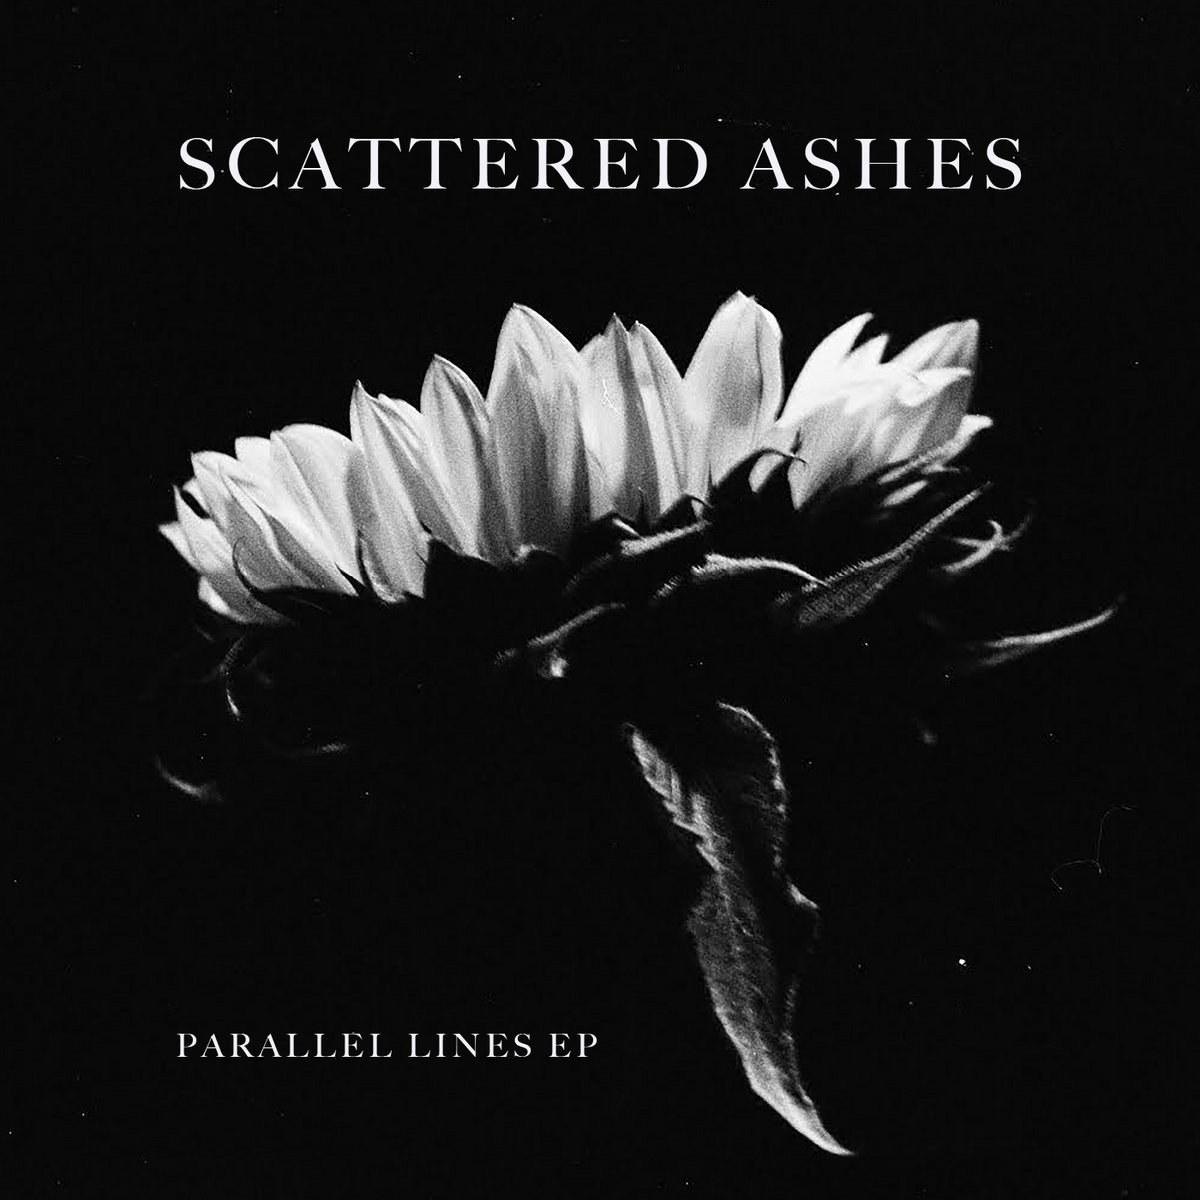 Scattered Ashes - Parallel Lines EP